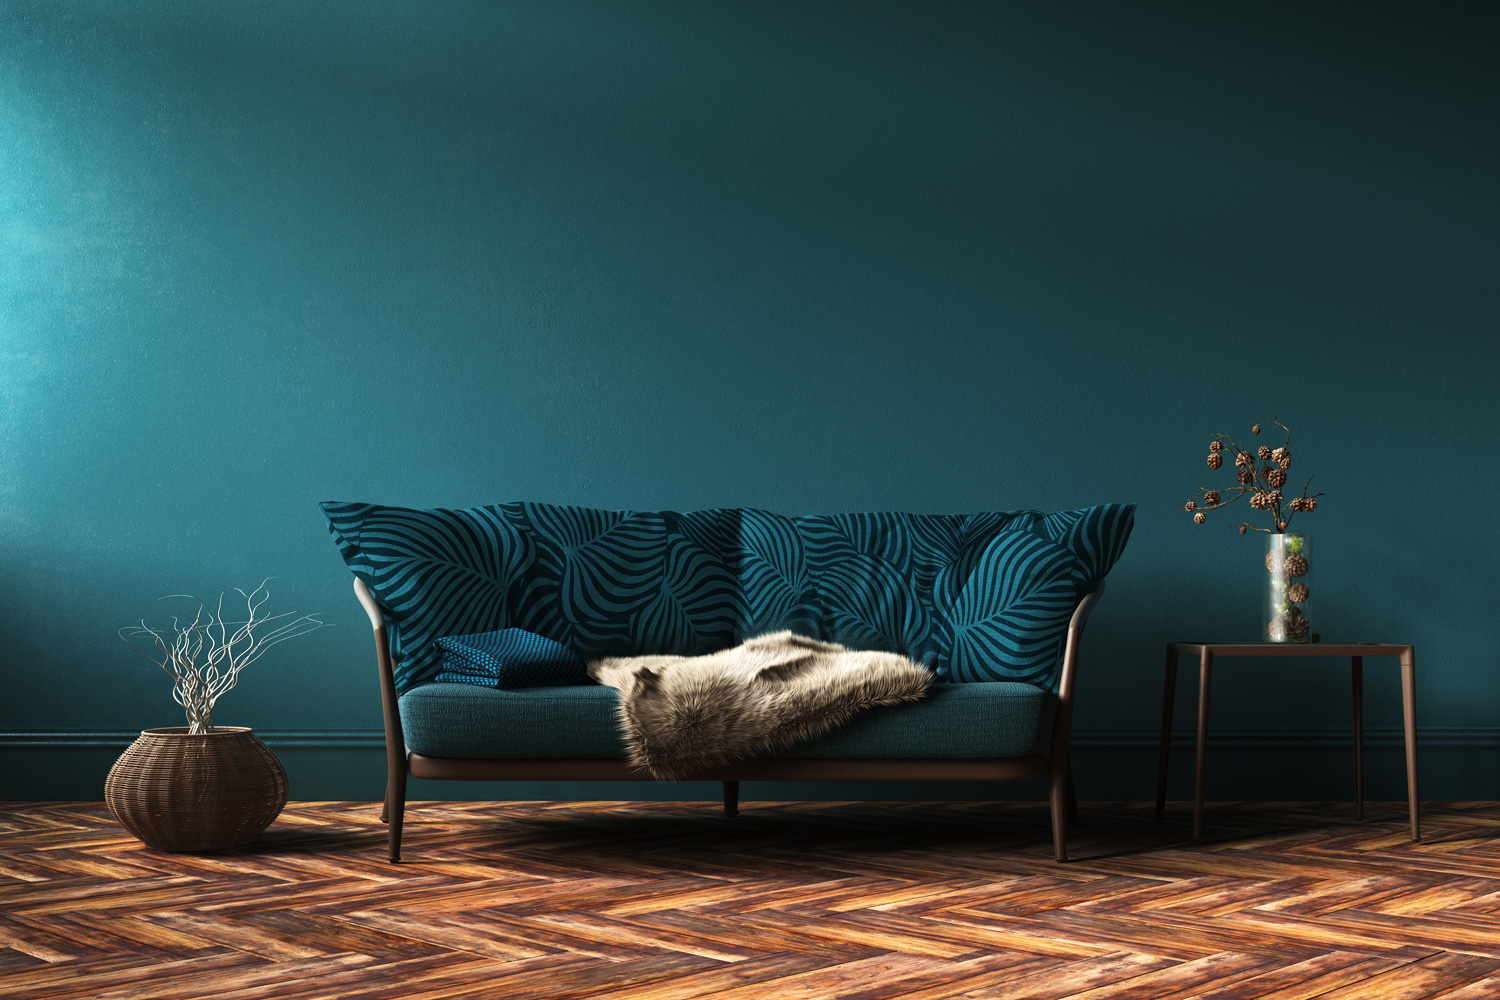 Green Teal Couch in Green Teal Room with Palm Print by Mereton Textiles